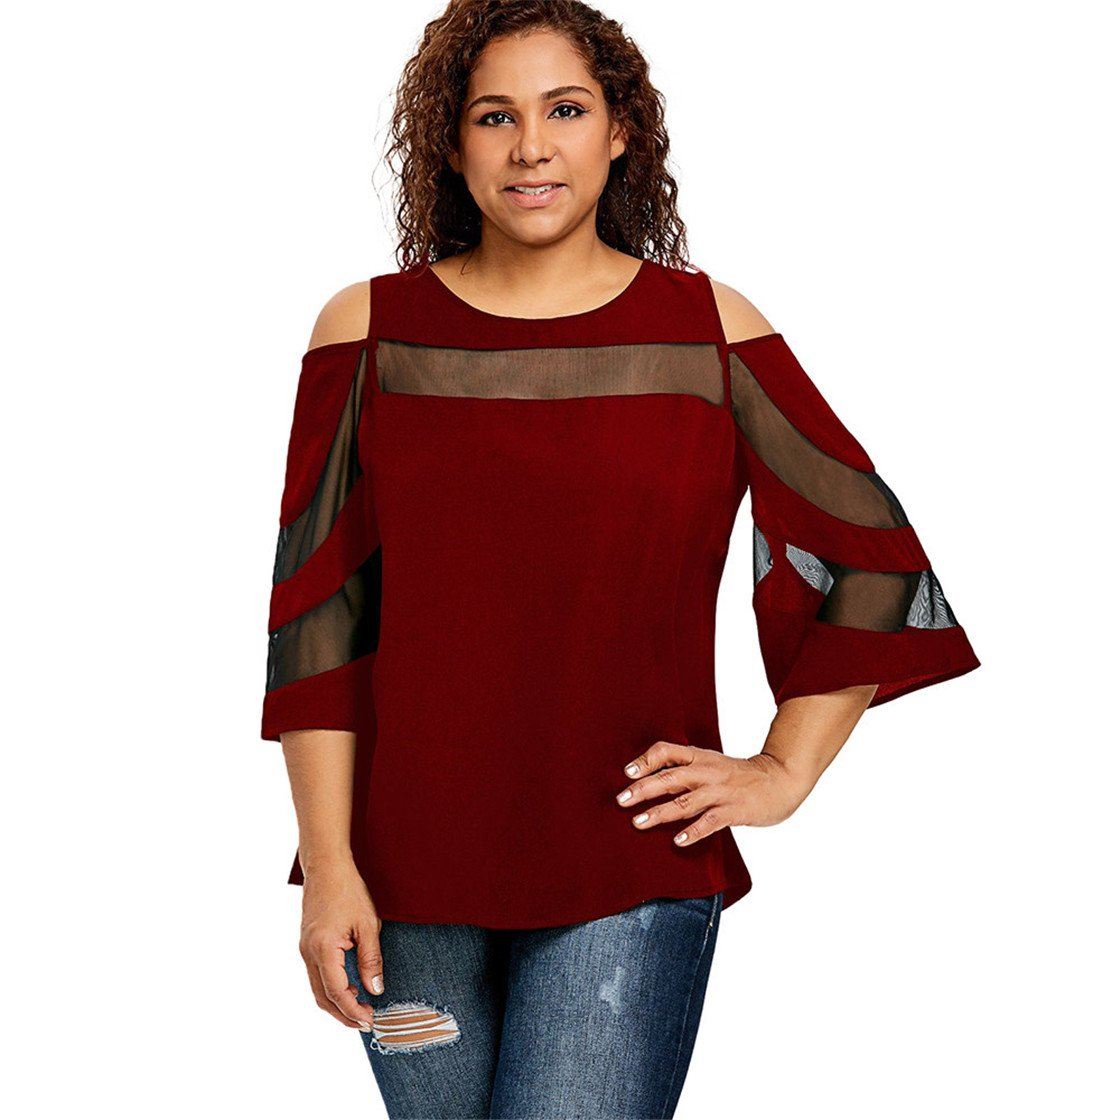 Mose Plus Size Women Clothes, Women's Strapless Cutout Tops Cold Shoulder Long Sleeve Sweatshirt Pullover T-Shirt Casual Fashion New Blouse (L3, Wine)